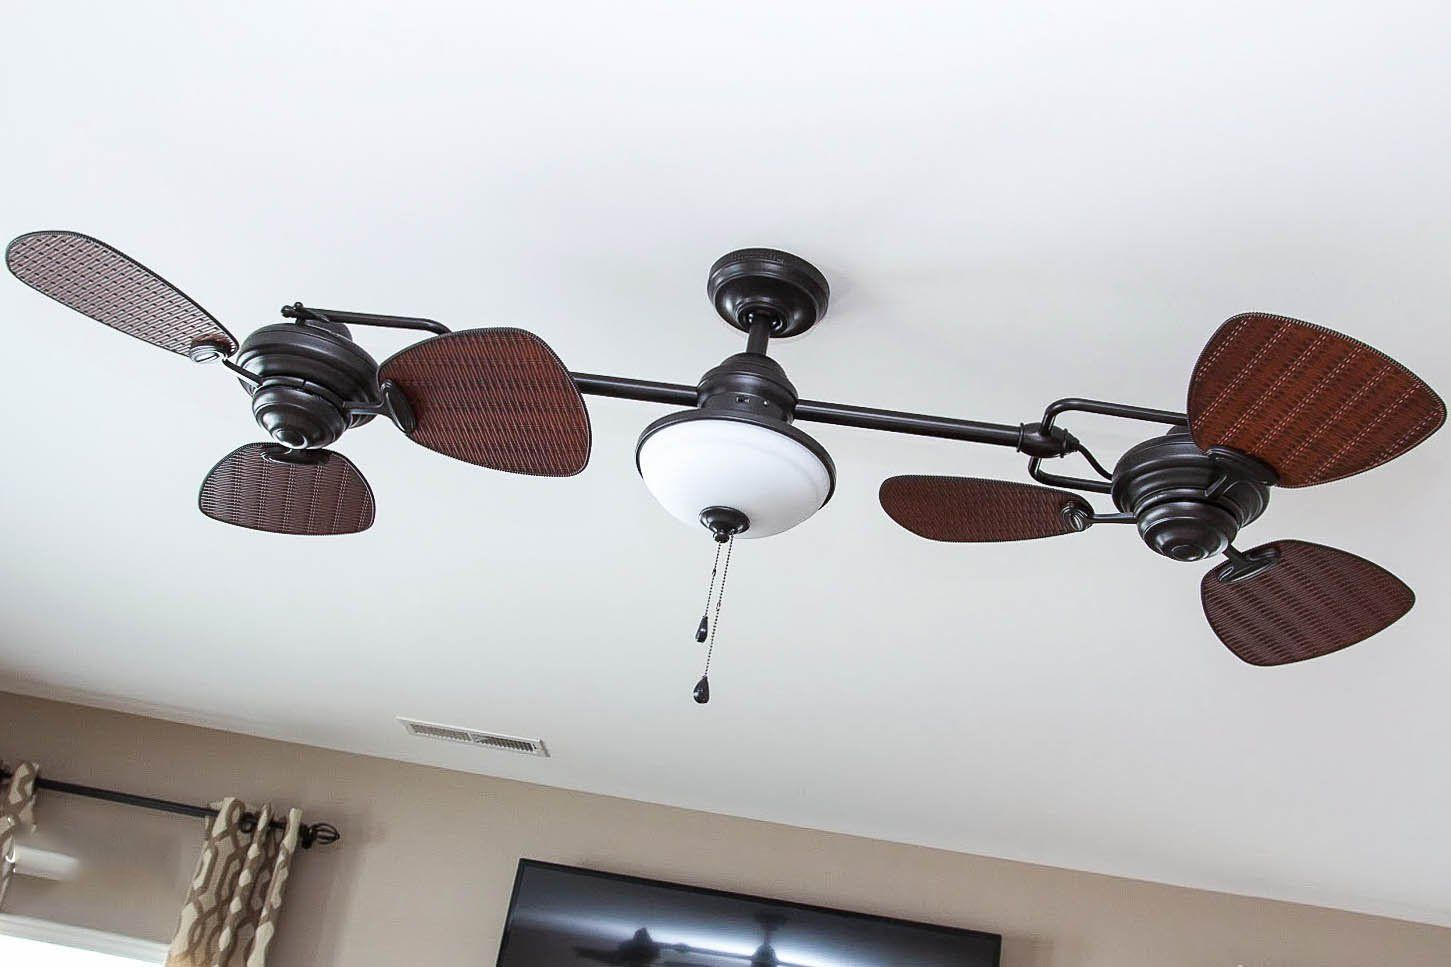 All Of The Harbor Breeze Ceiling Fans